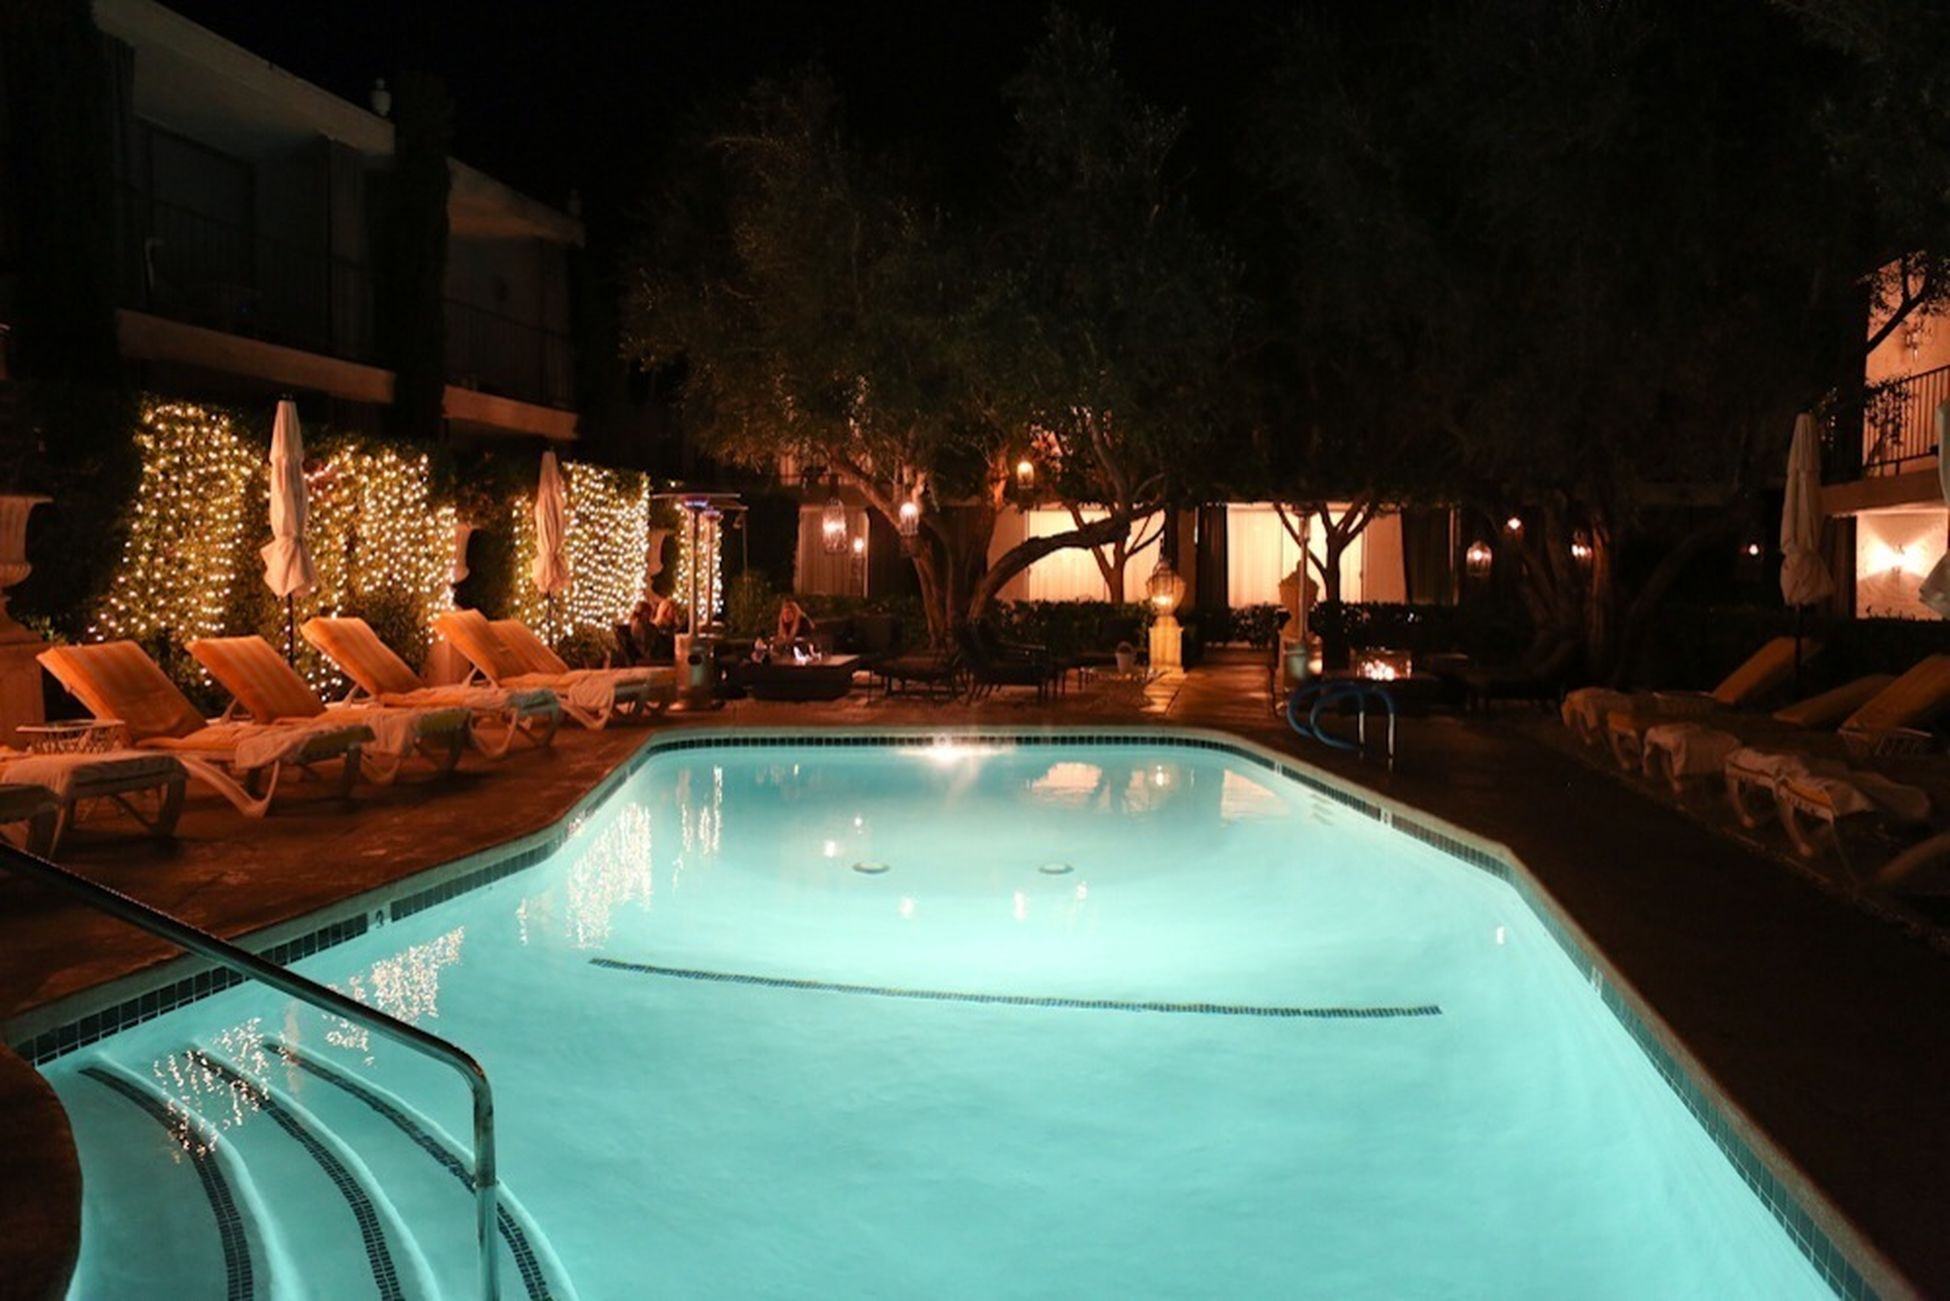 Night poolscape at the Viceroy Palm Springs